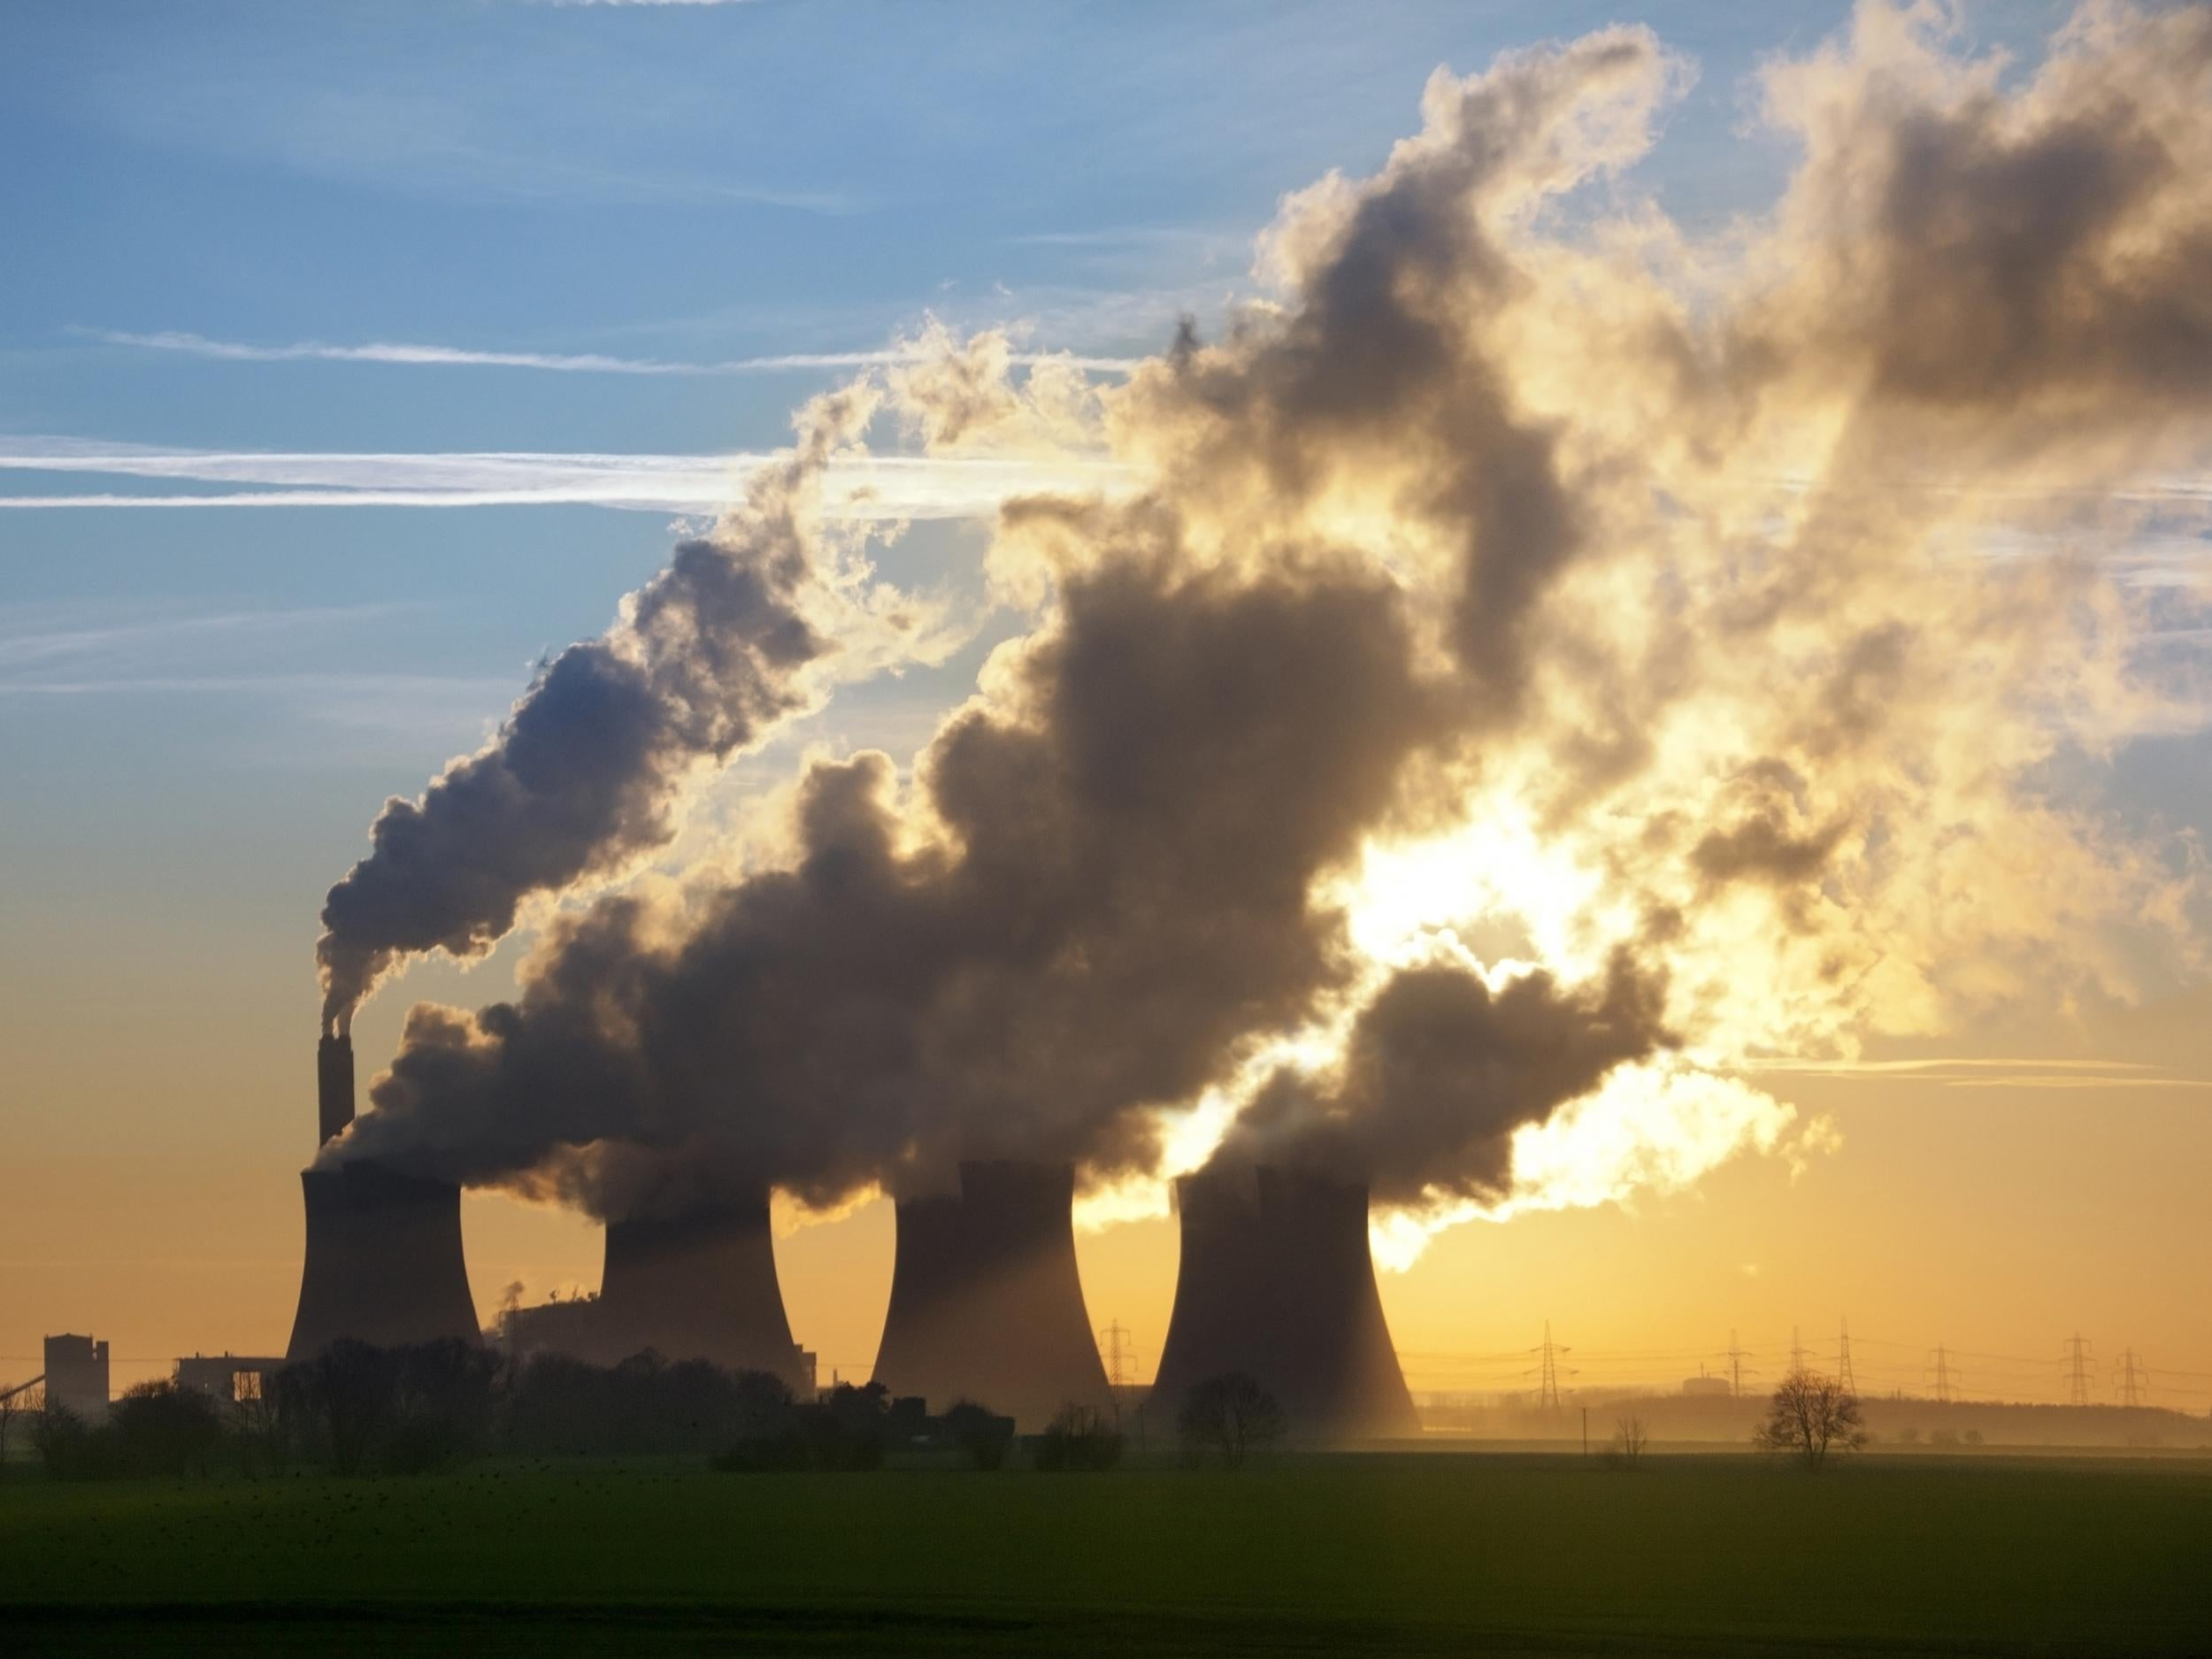 Fossil fuel industry must contribute towards £44bn climate change damage in UK each year, campaigners say